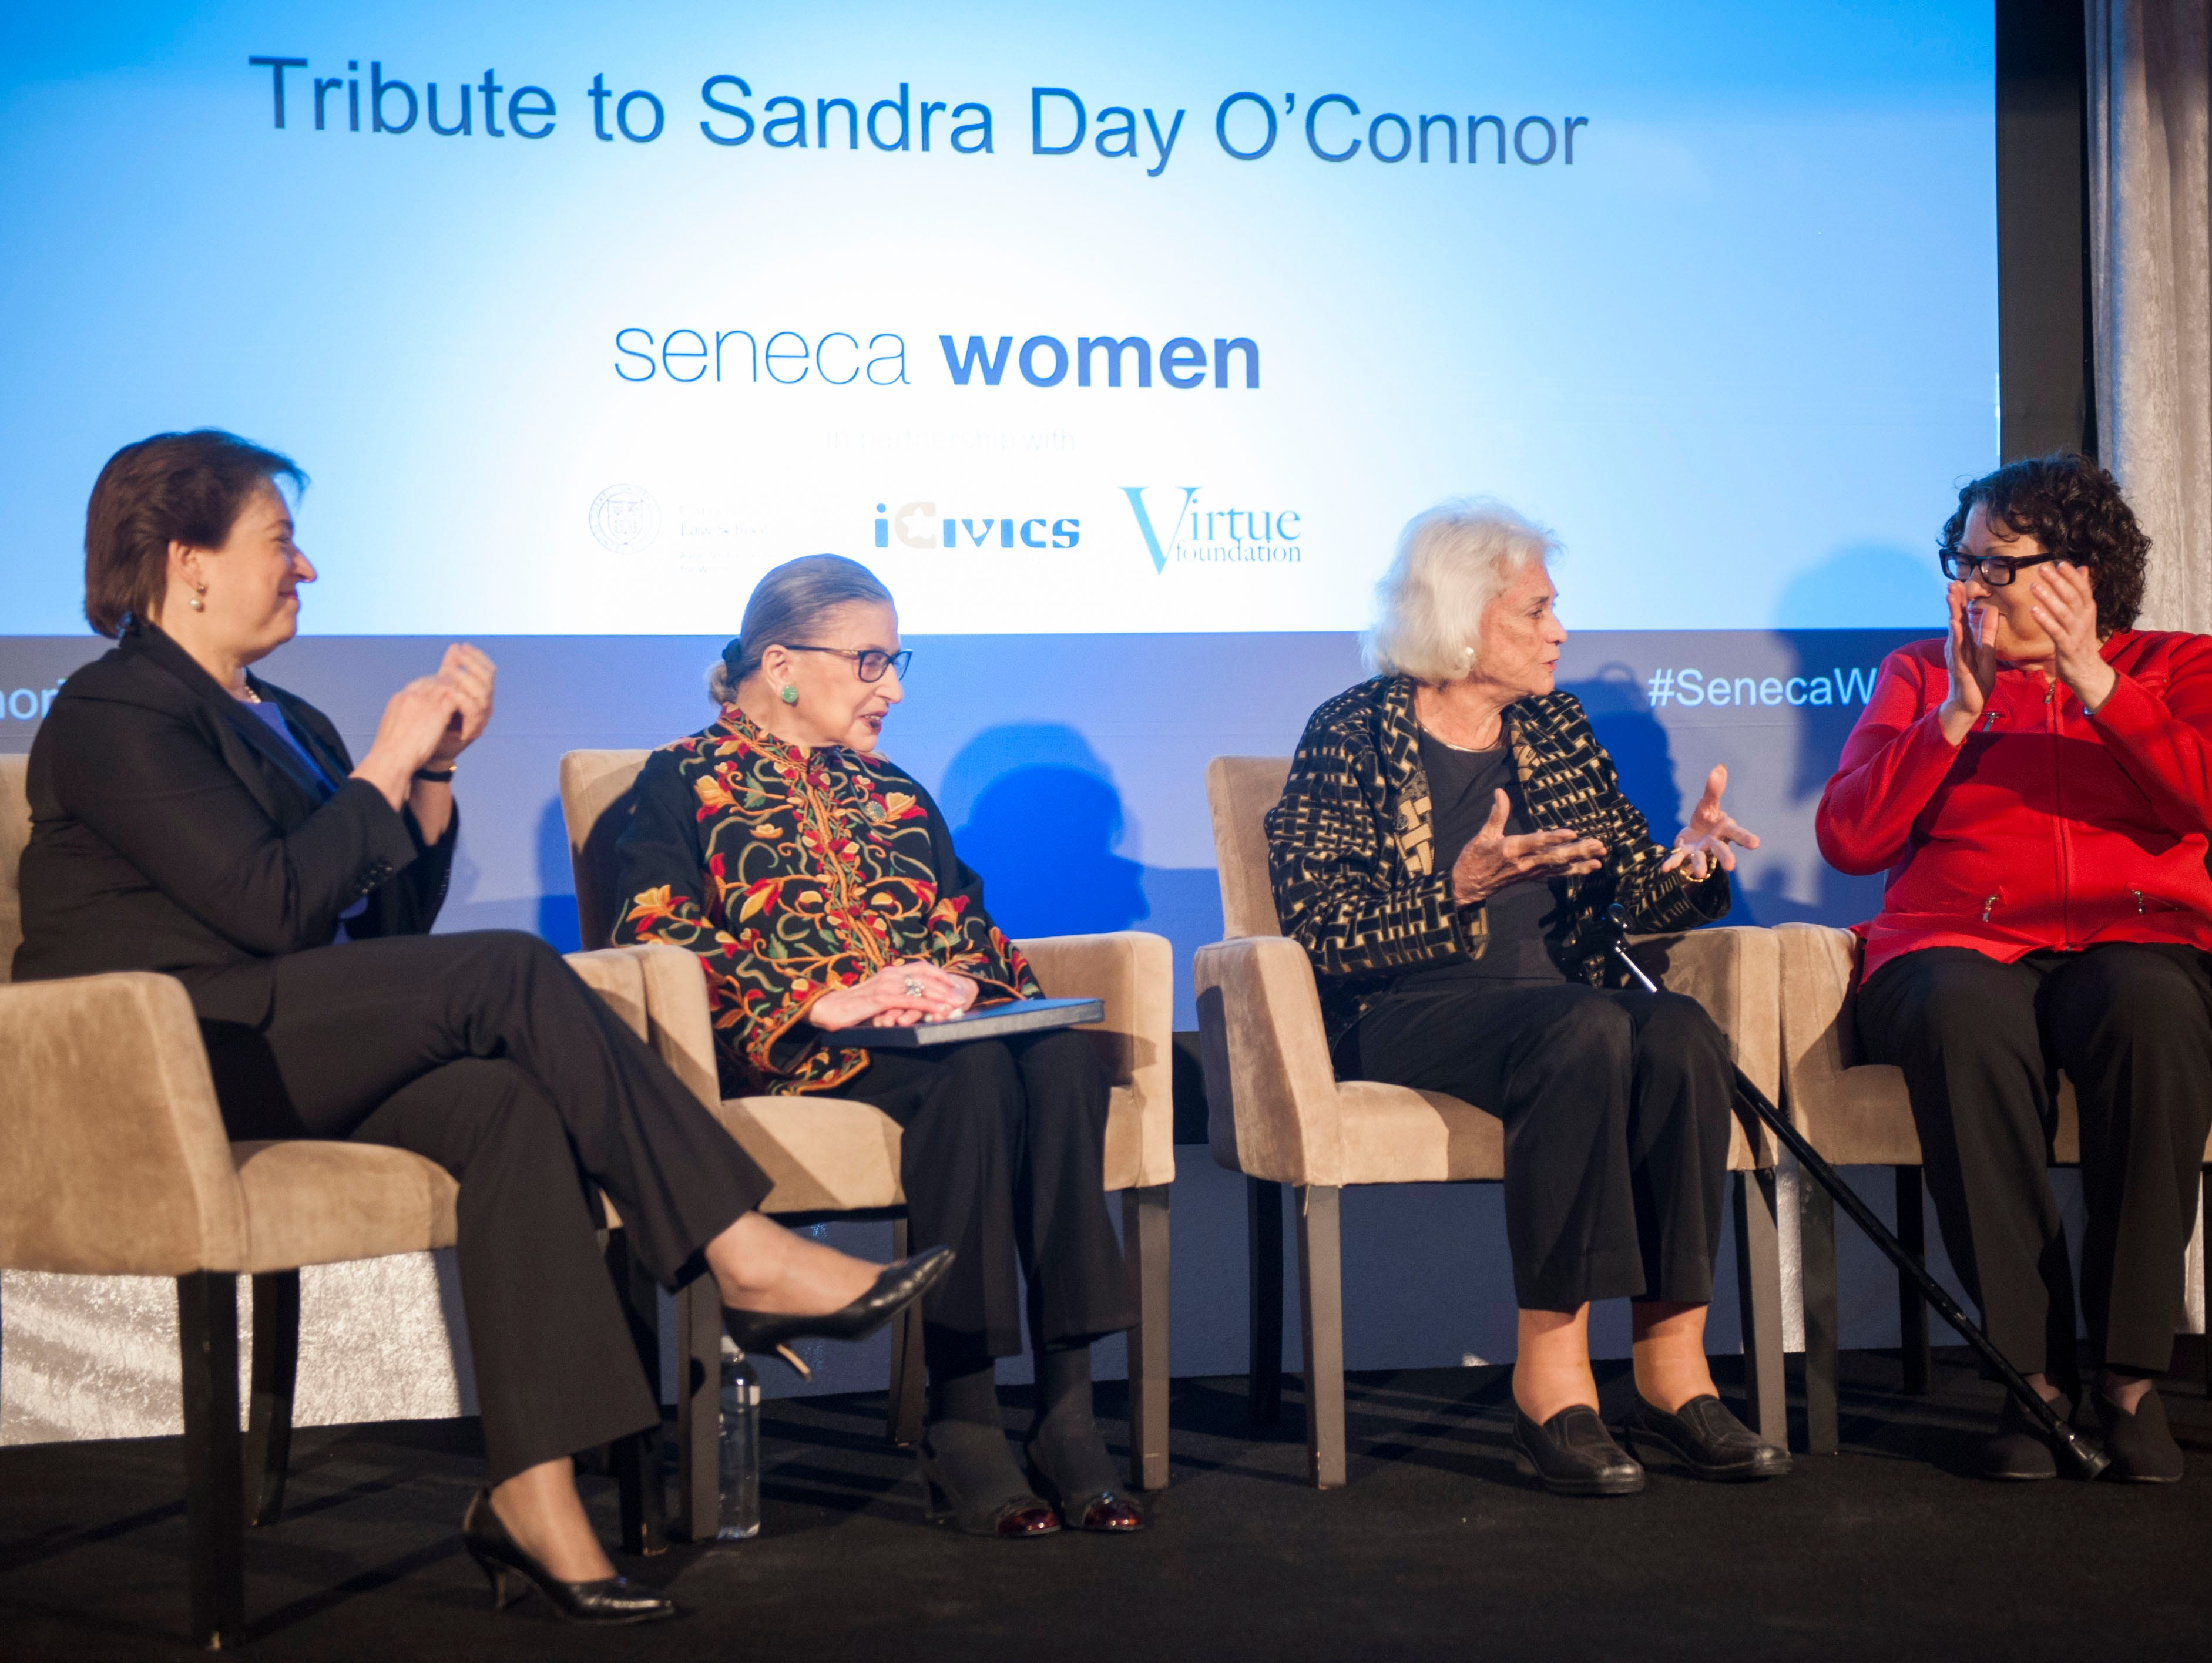 From left, Supreme Court Justices Elena Kagan, Ruth Bader Ginsburg, Sandra Day O'Connor and Sonia Sotomayor, sit on stage at the Seneca Women Global Leadership Forum on April 15, 2015 at the National Museum of Women in the Arts in Washington. O'Connor was honored for her advocacy work for civic education, impact on female judges and justice for women and girls worldwide.